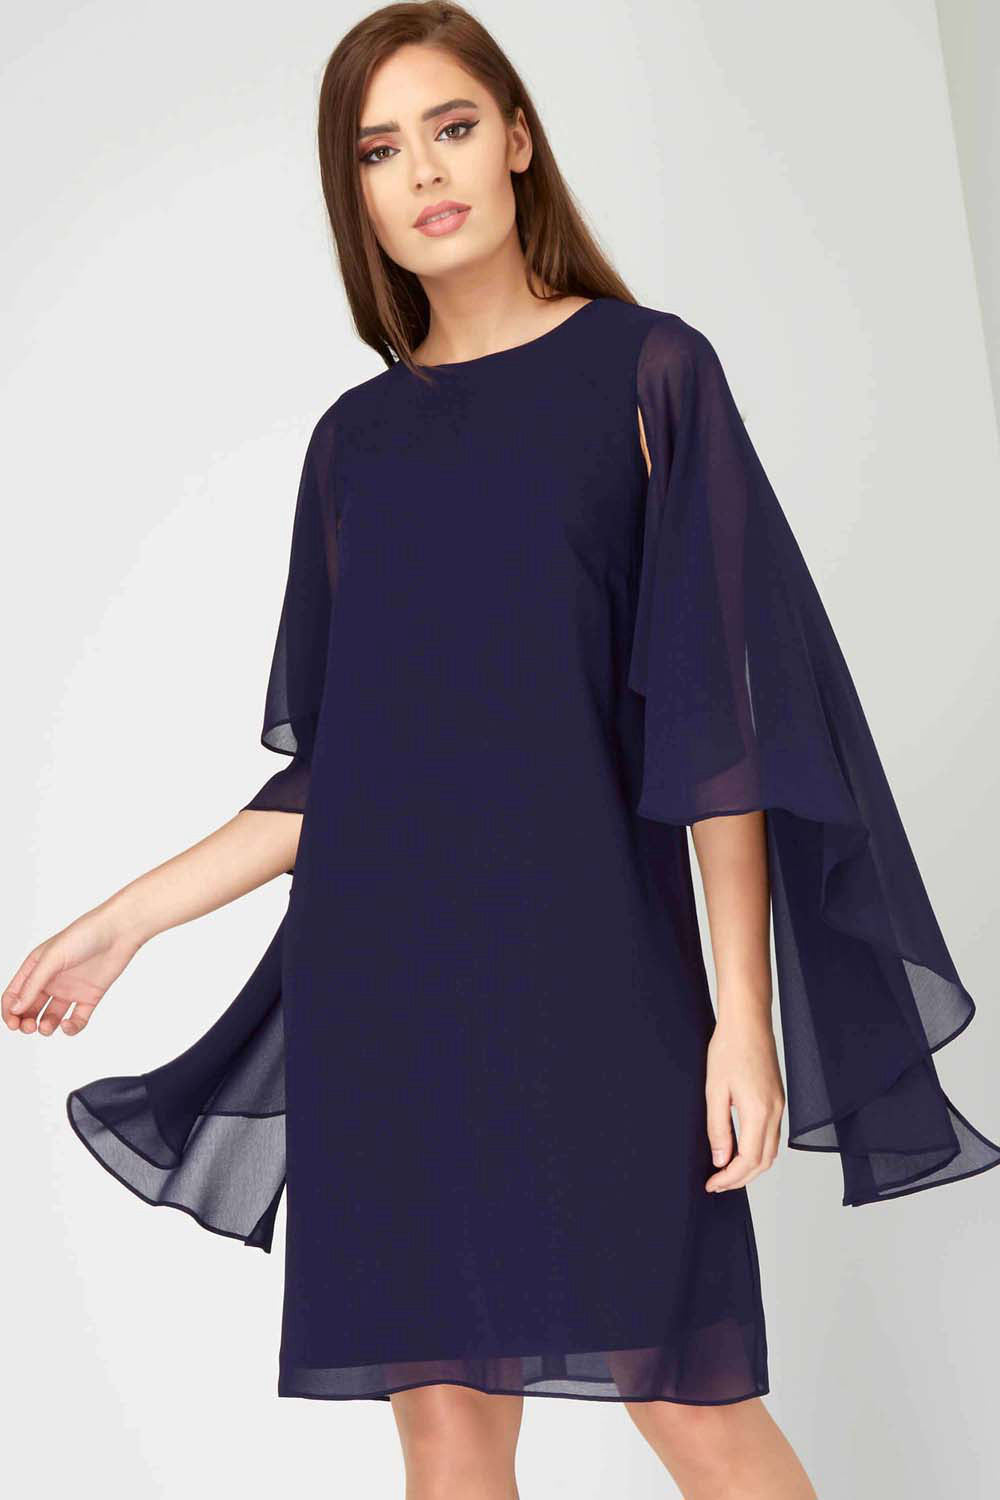 Chiffon 3/4 Sleeves Short Mother of Bride Dresses